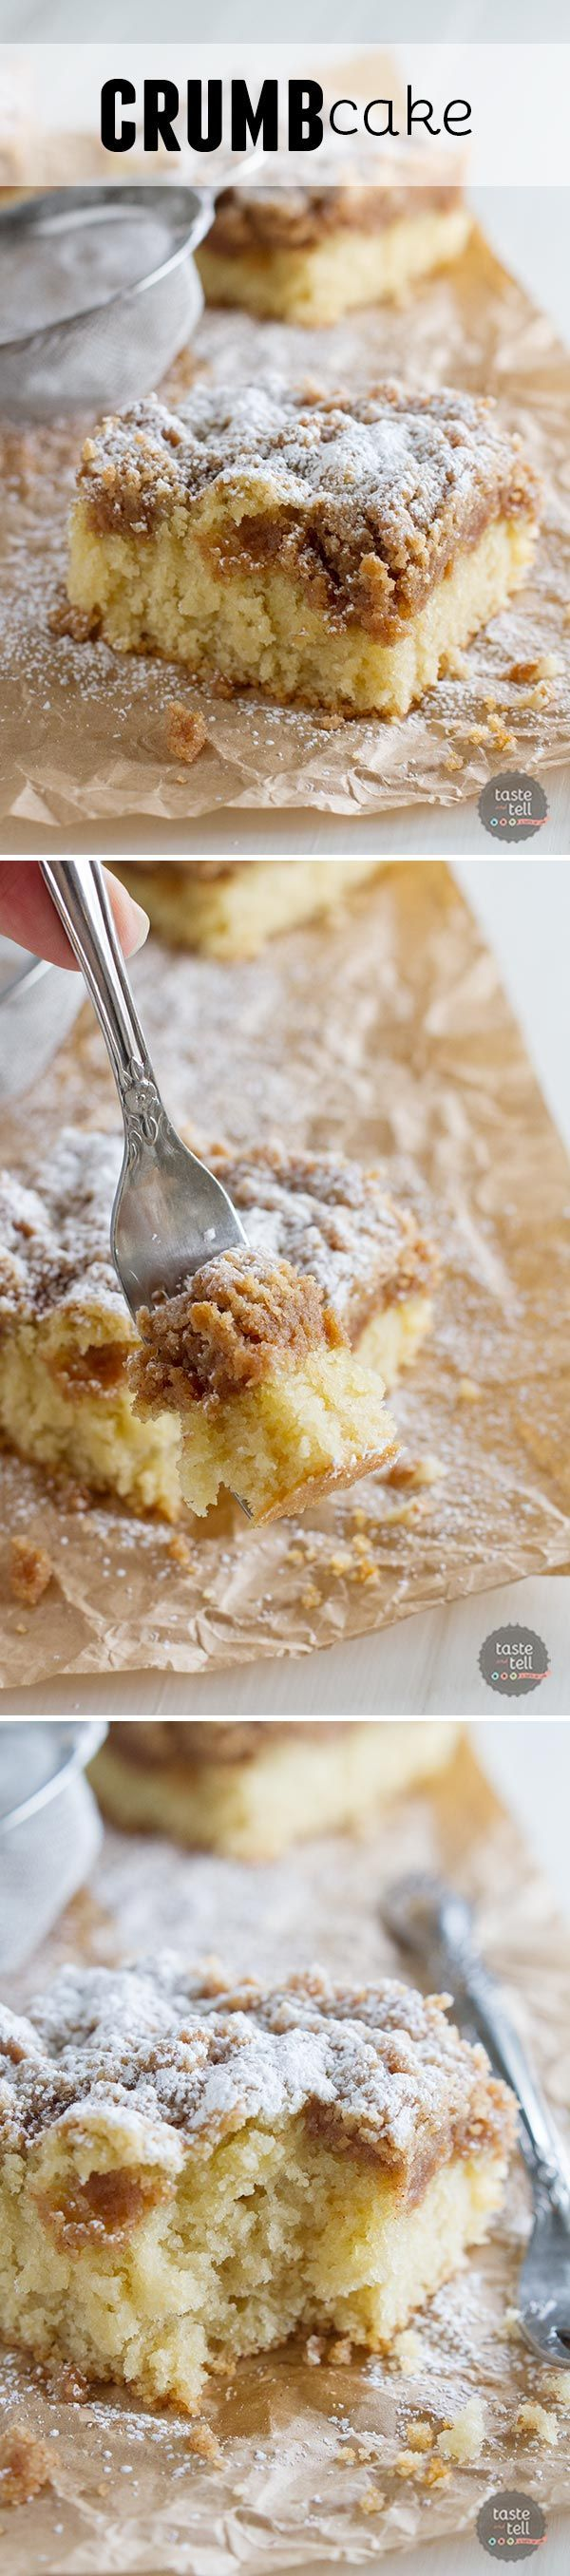 This Crumb Cake Recipe has a moist cake that is topped with a thick layer of crumb topping. This is the BEST crumb cake recipe!